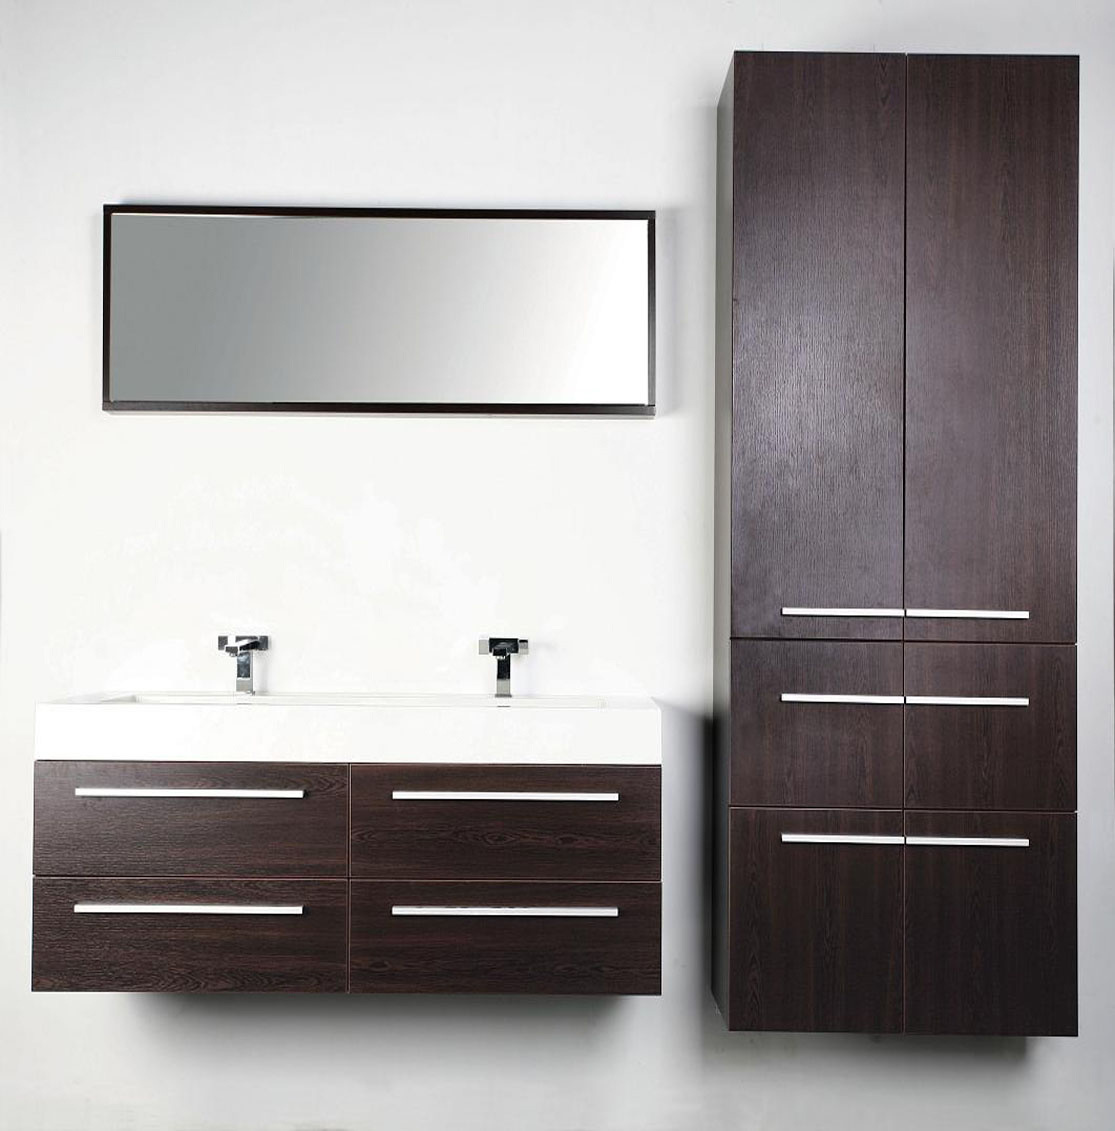 SHOPZILLA  ALLEN ROTH BATHROOM CABINETS, BATH FURNITURE BATH.